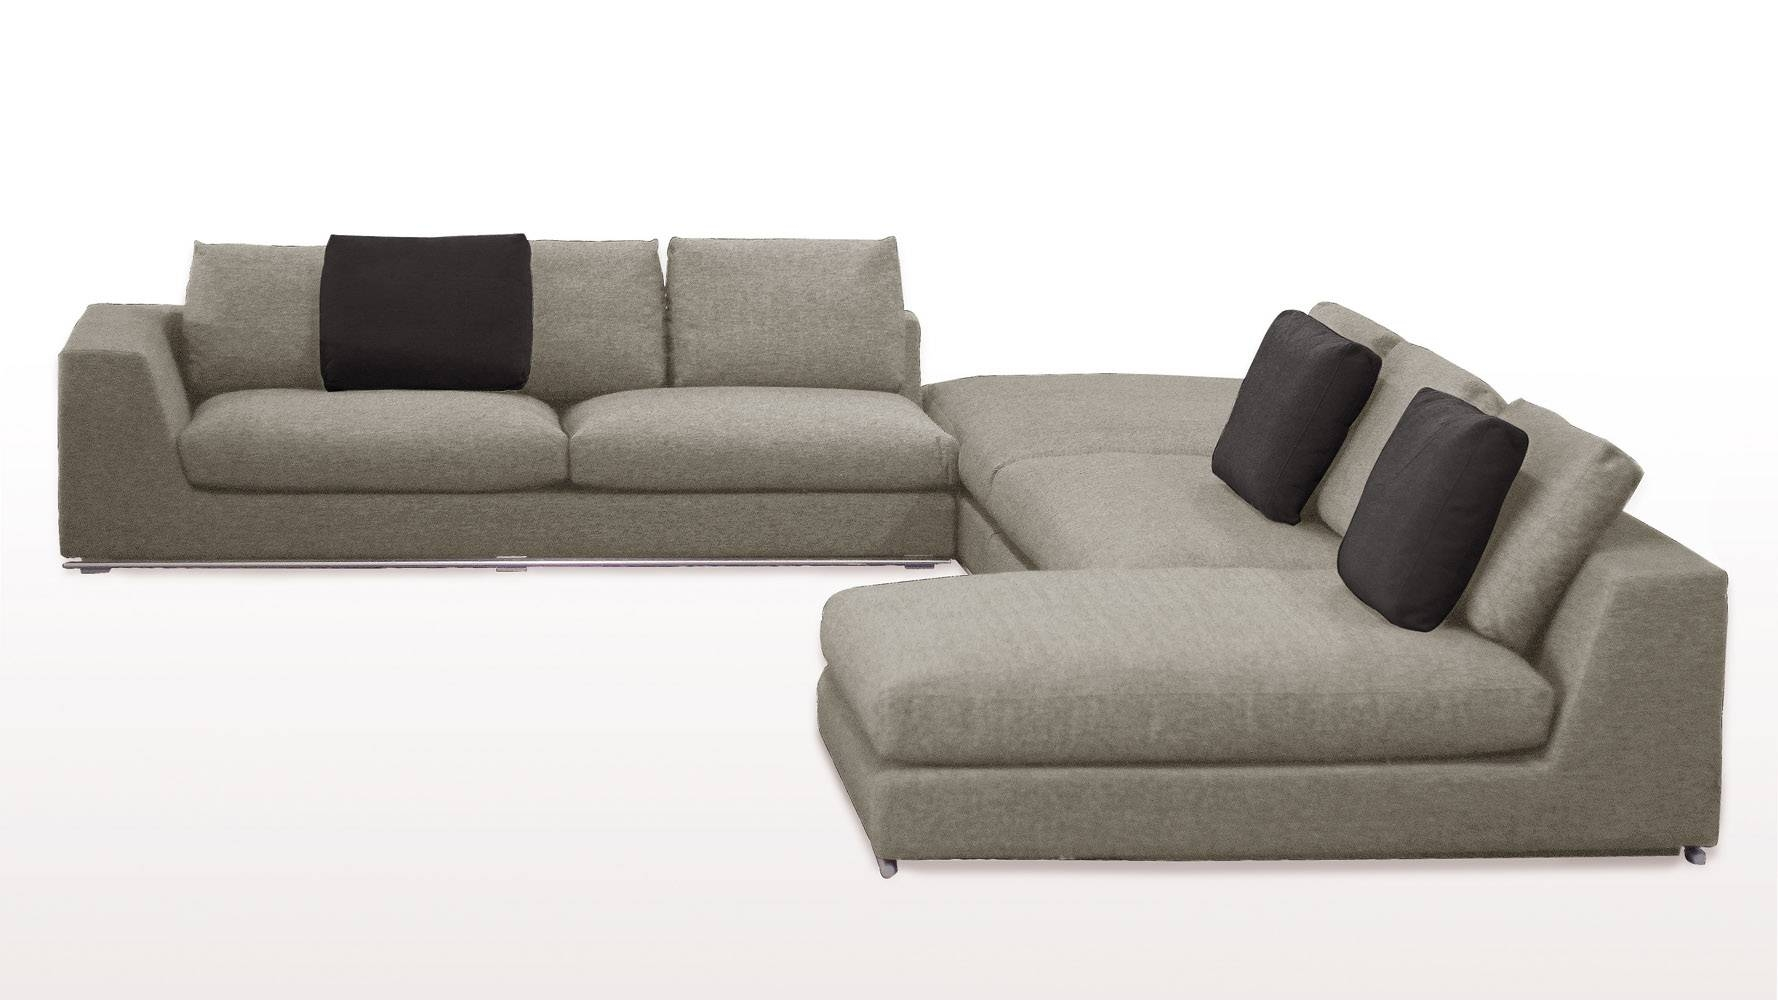 Comodo Sectional Sofa With Ottoman   Grey | Zuri Furniture Inside Armless Sectional Sofas (Photo 7 of 30)